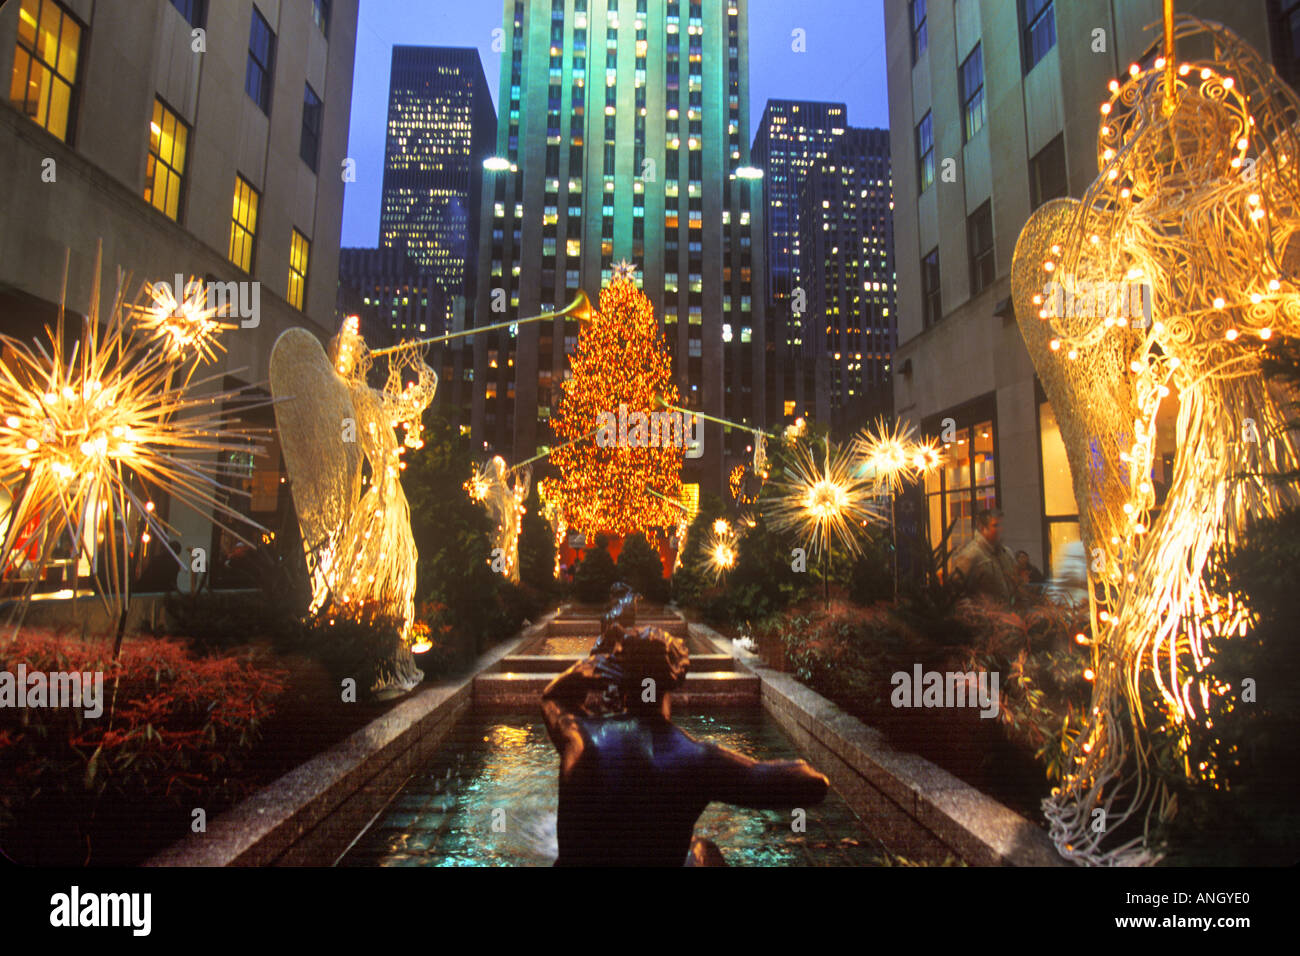 New York City Rockefeller Center Christmas Holiday Decorations Stock ...